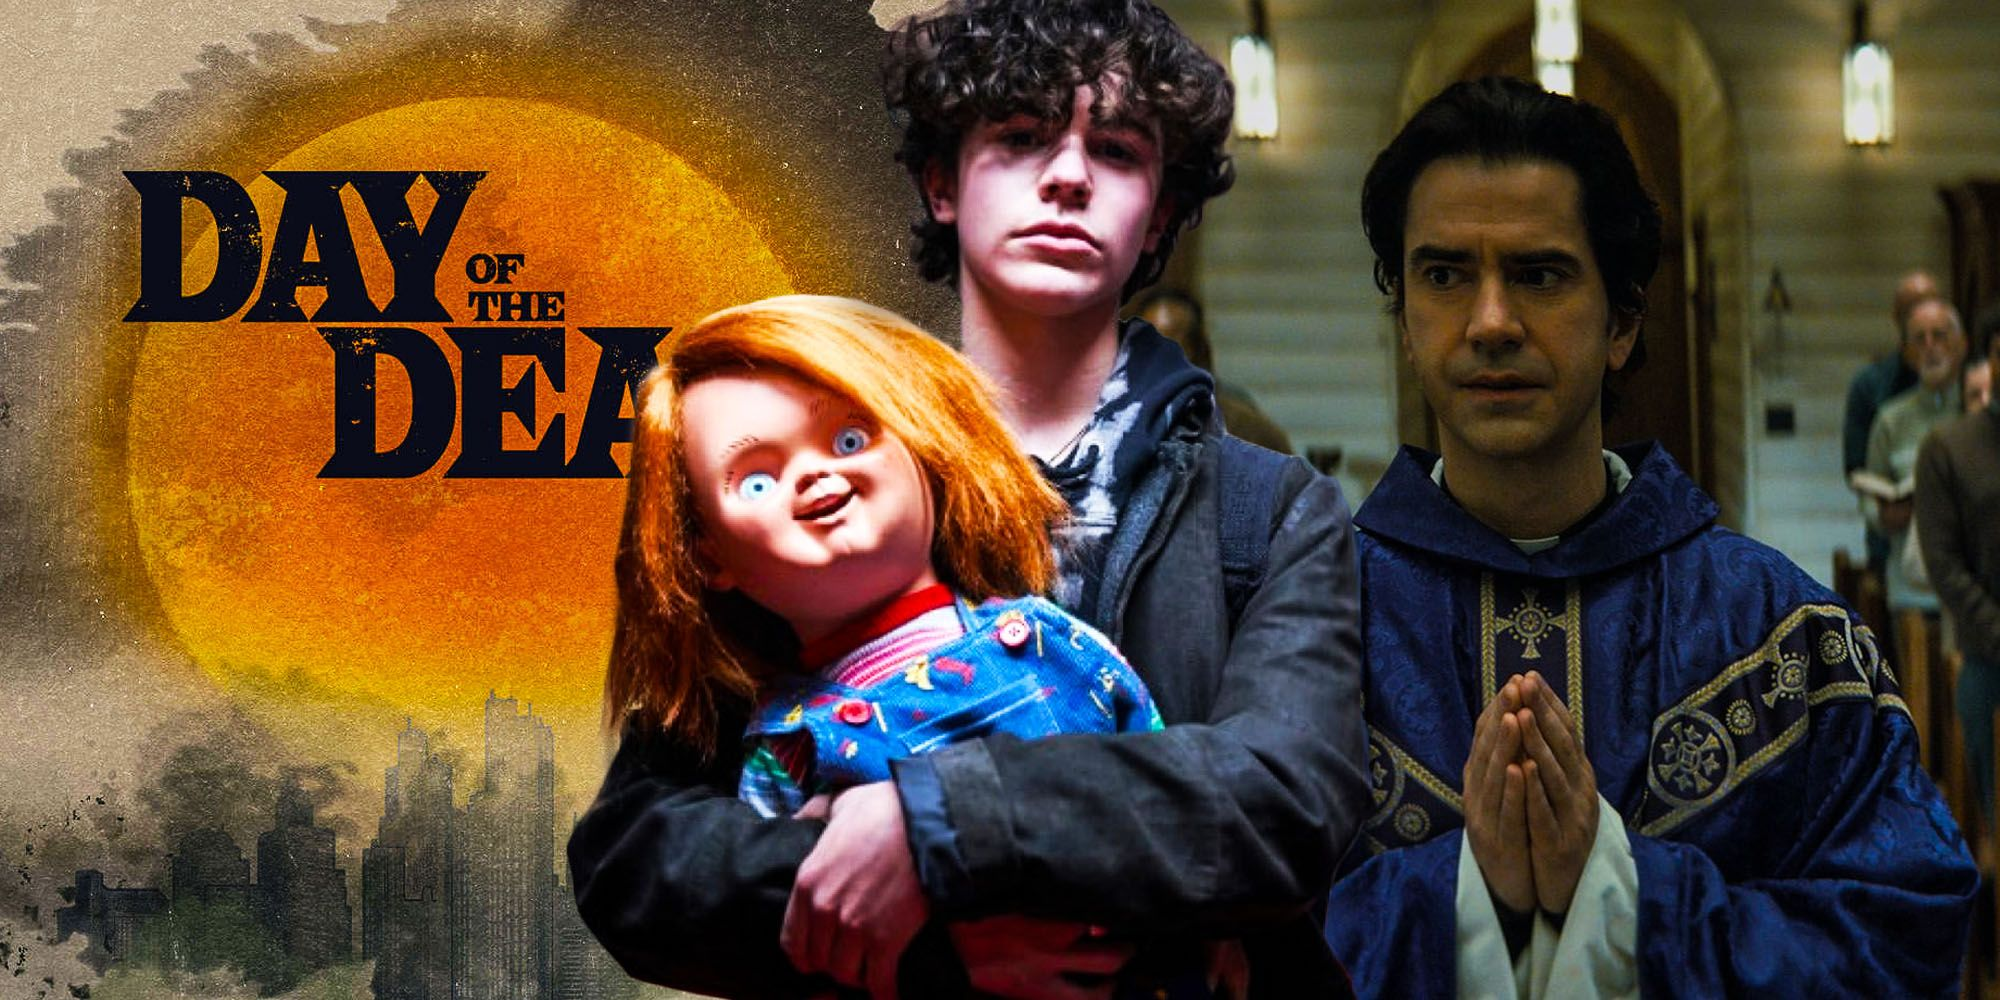 Every Upcoming Horror TV Show Releasing Fall 2021   Screen Rant - Screen Rant